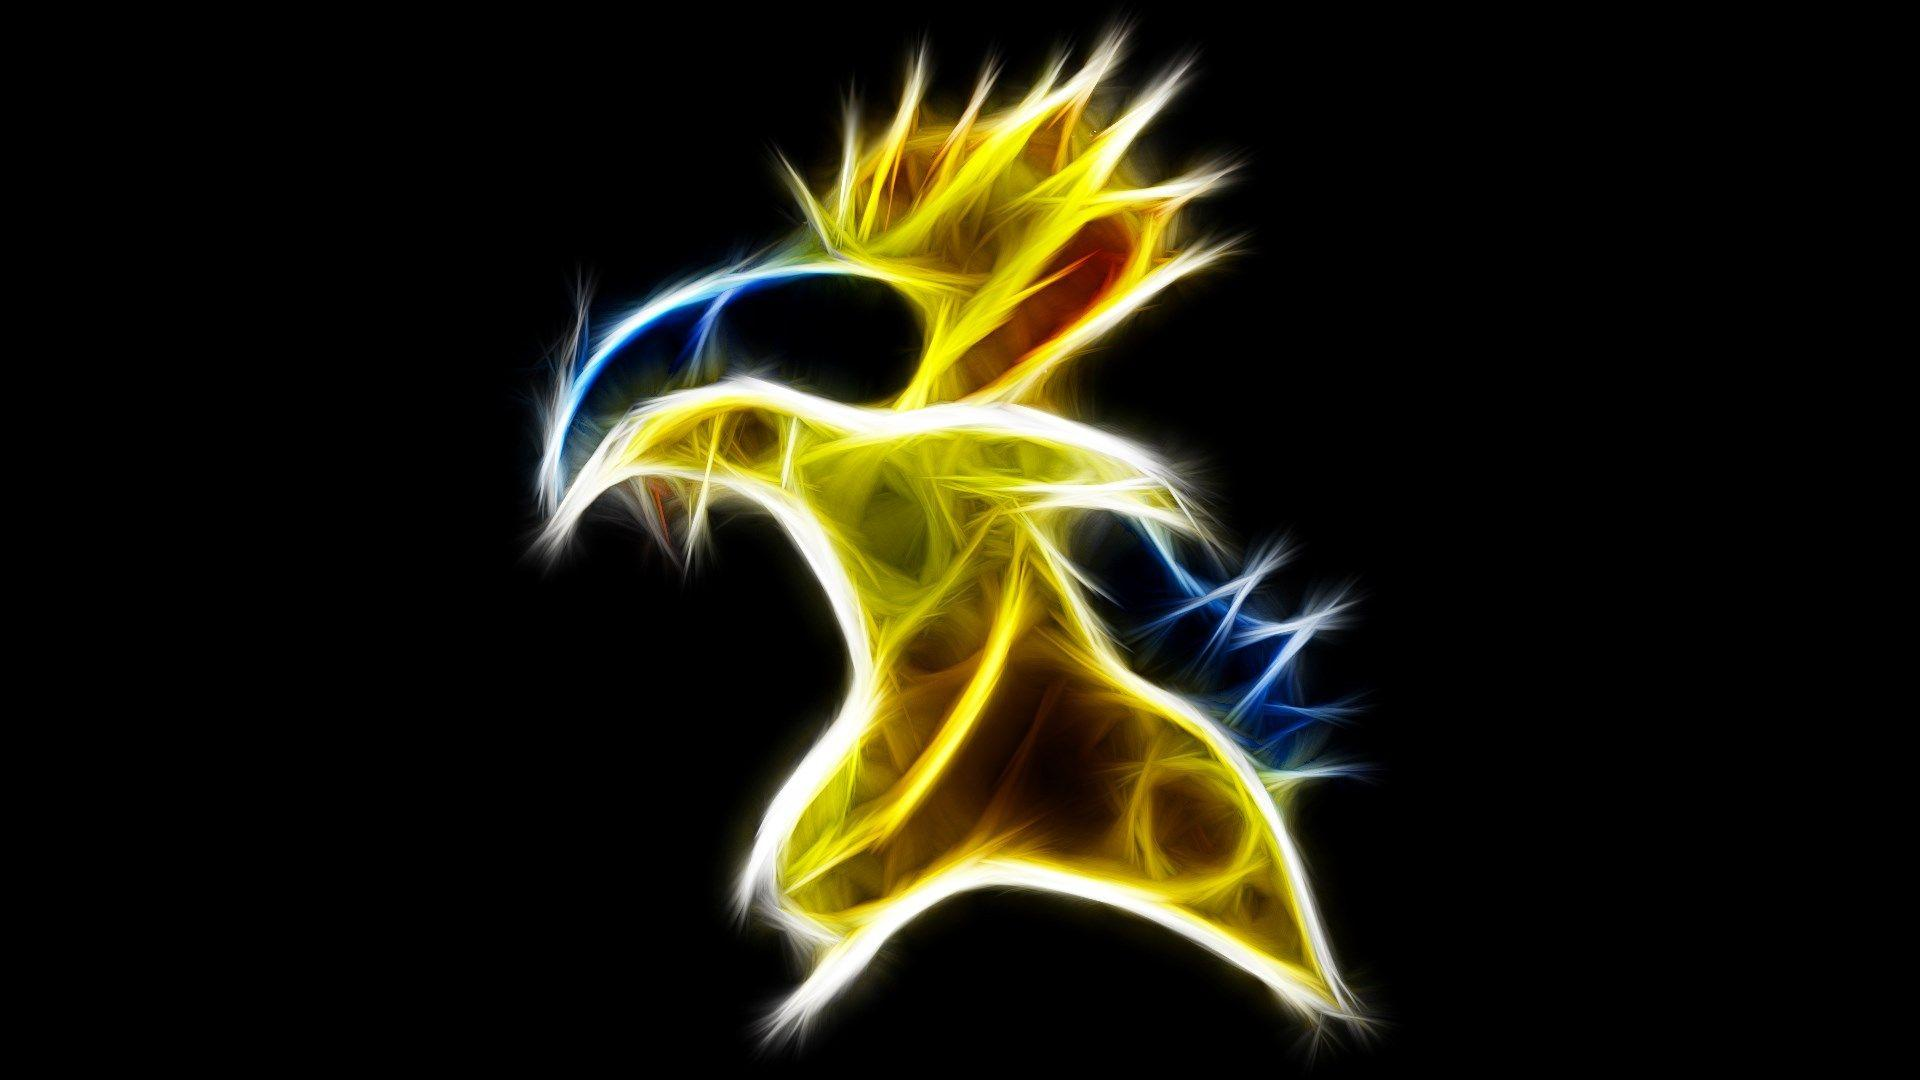 typhlosion hd wallpapers | ololoshka | Pinterest | Hd wallpaper